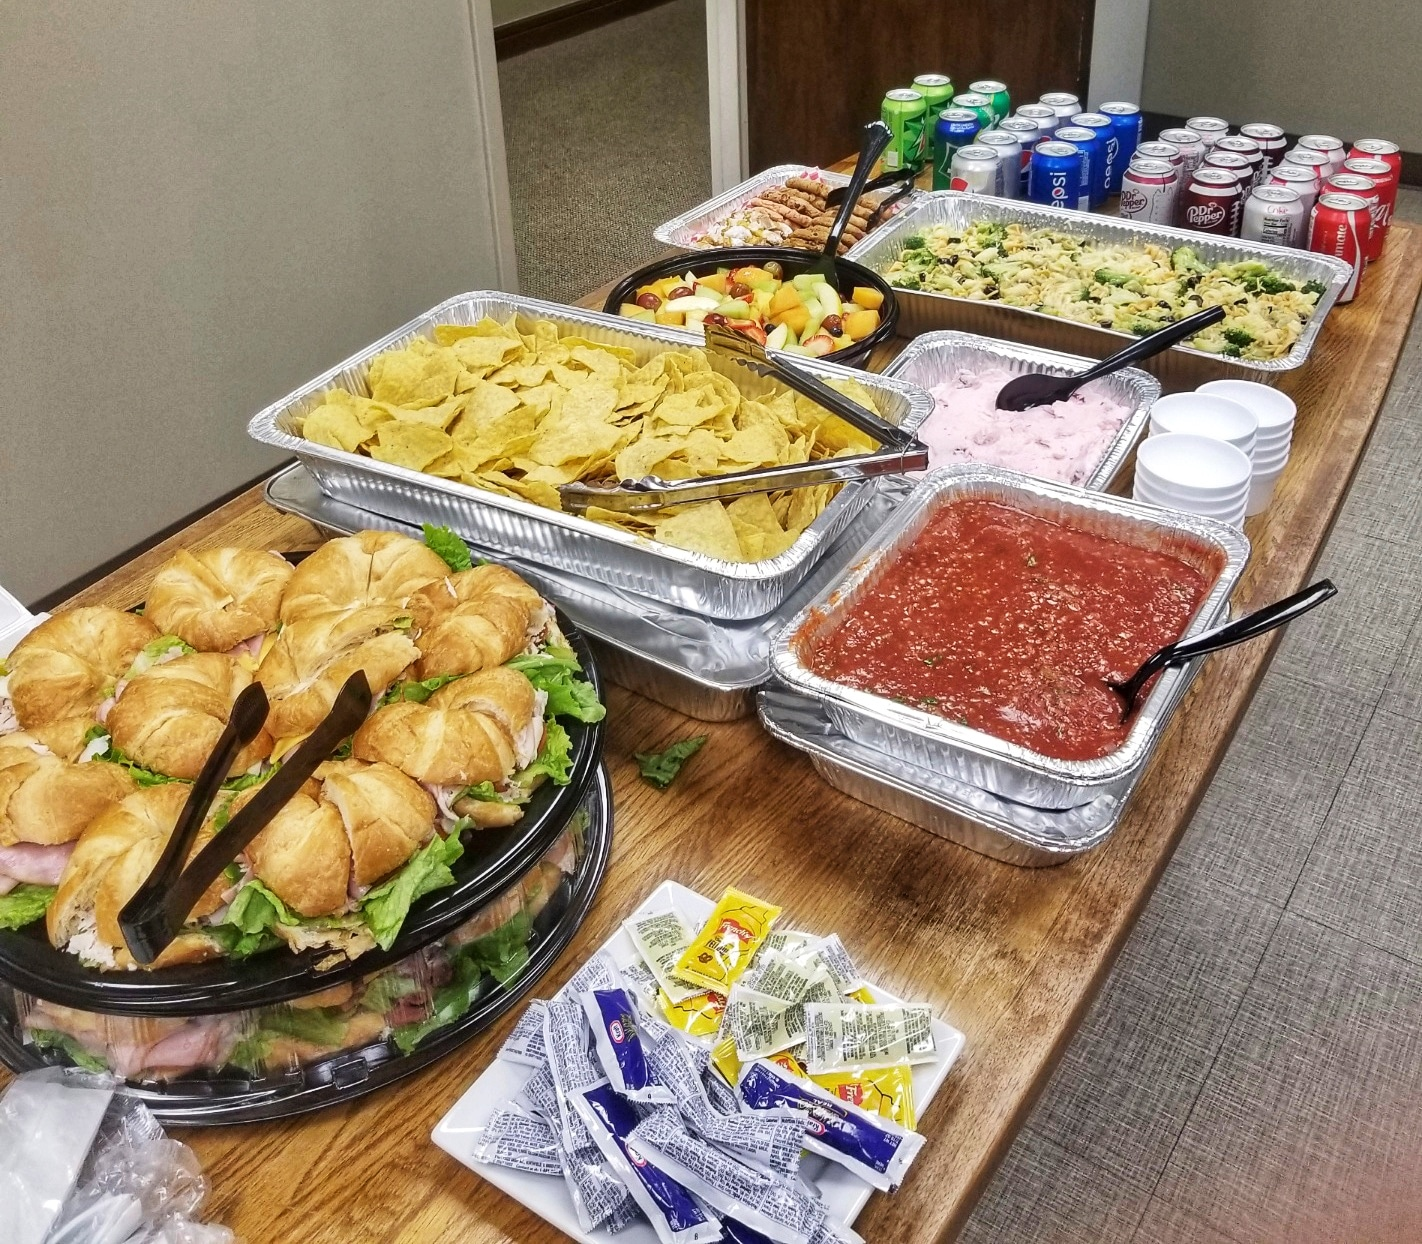 The Greens On Boulder Catering in Tulsa (918) 932-8878